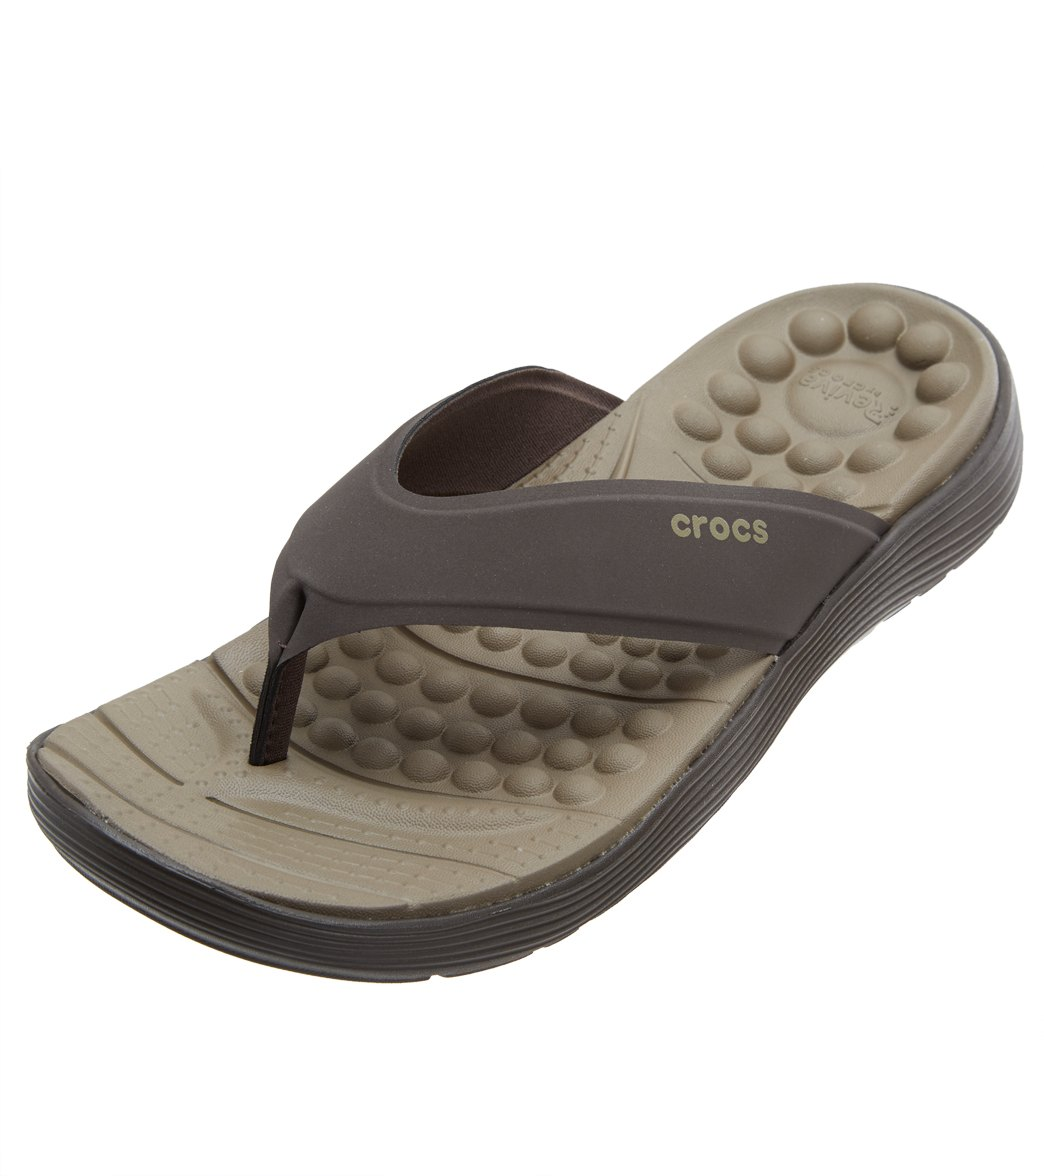 Crocs Mens Reviva Flip Flop